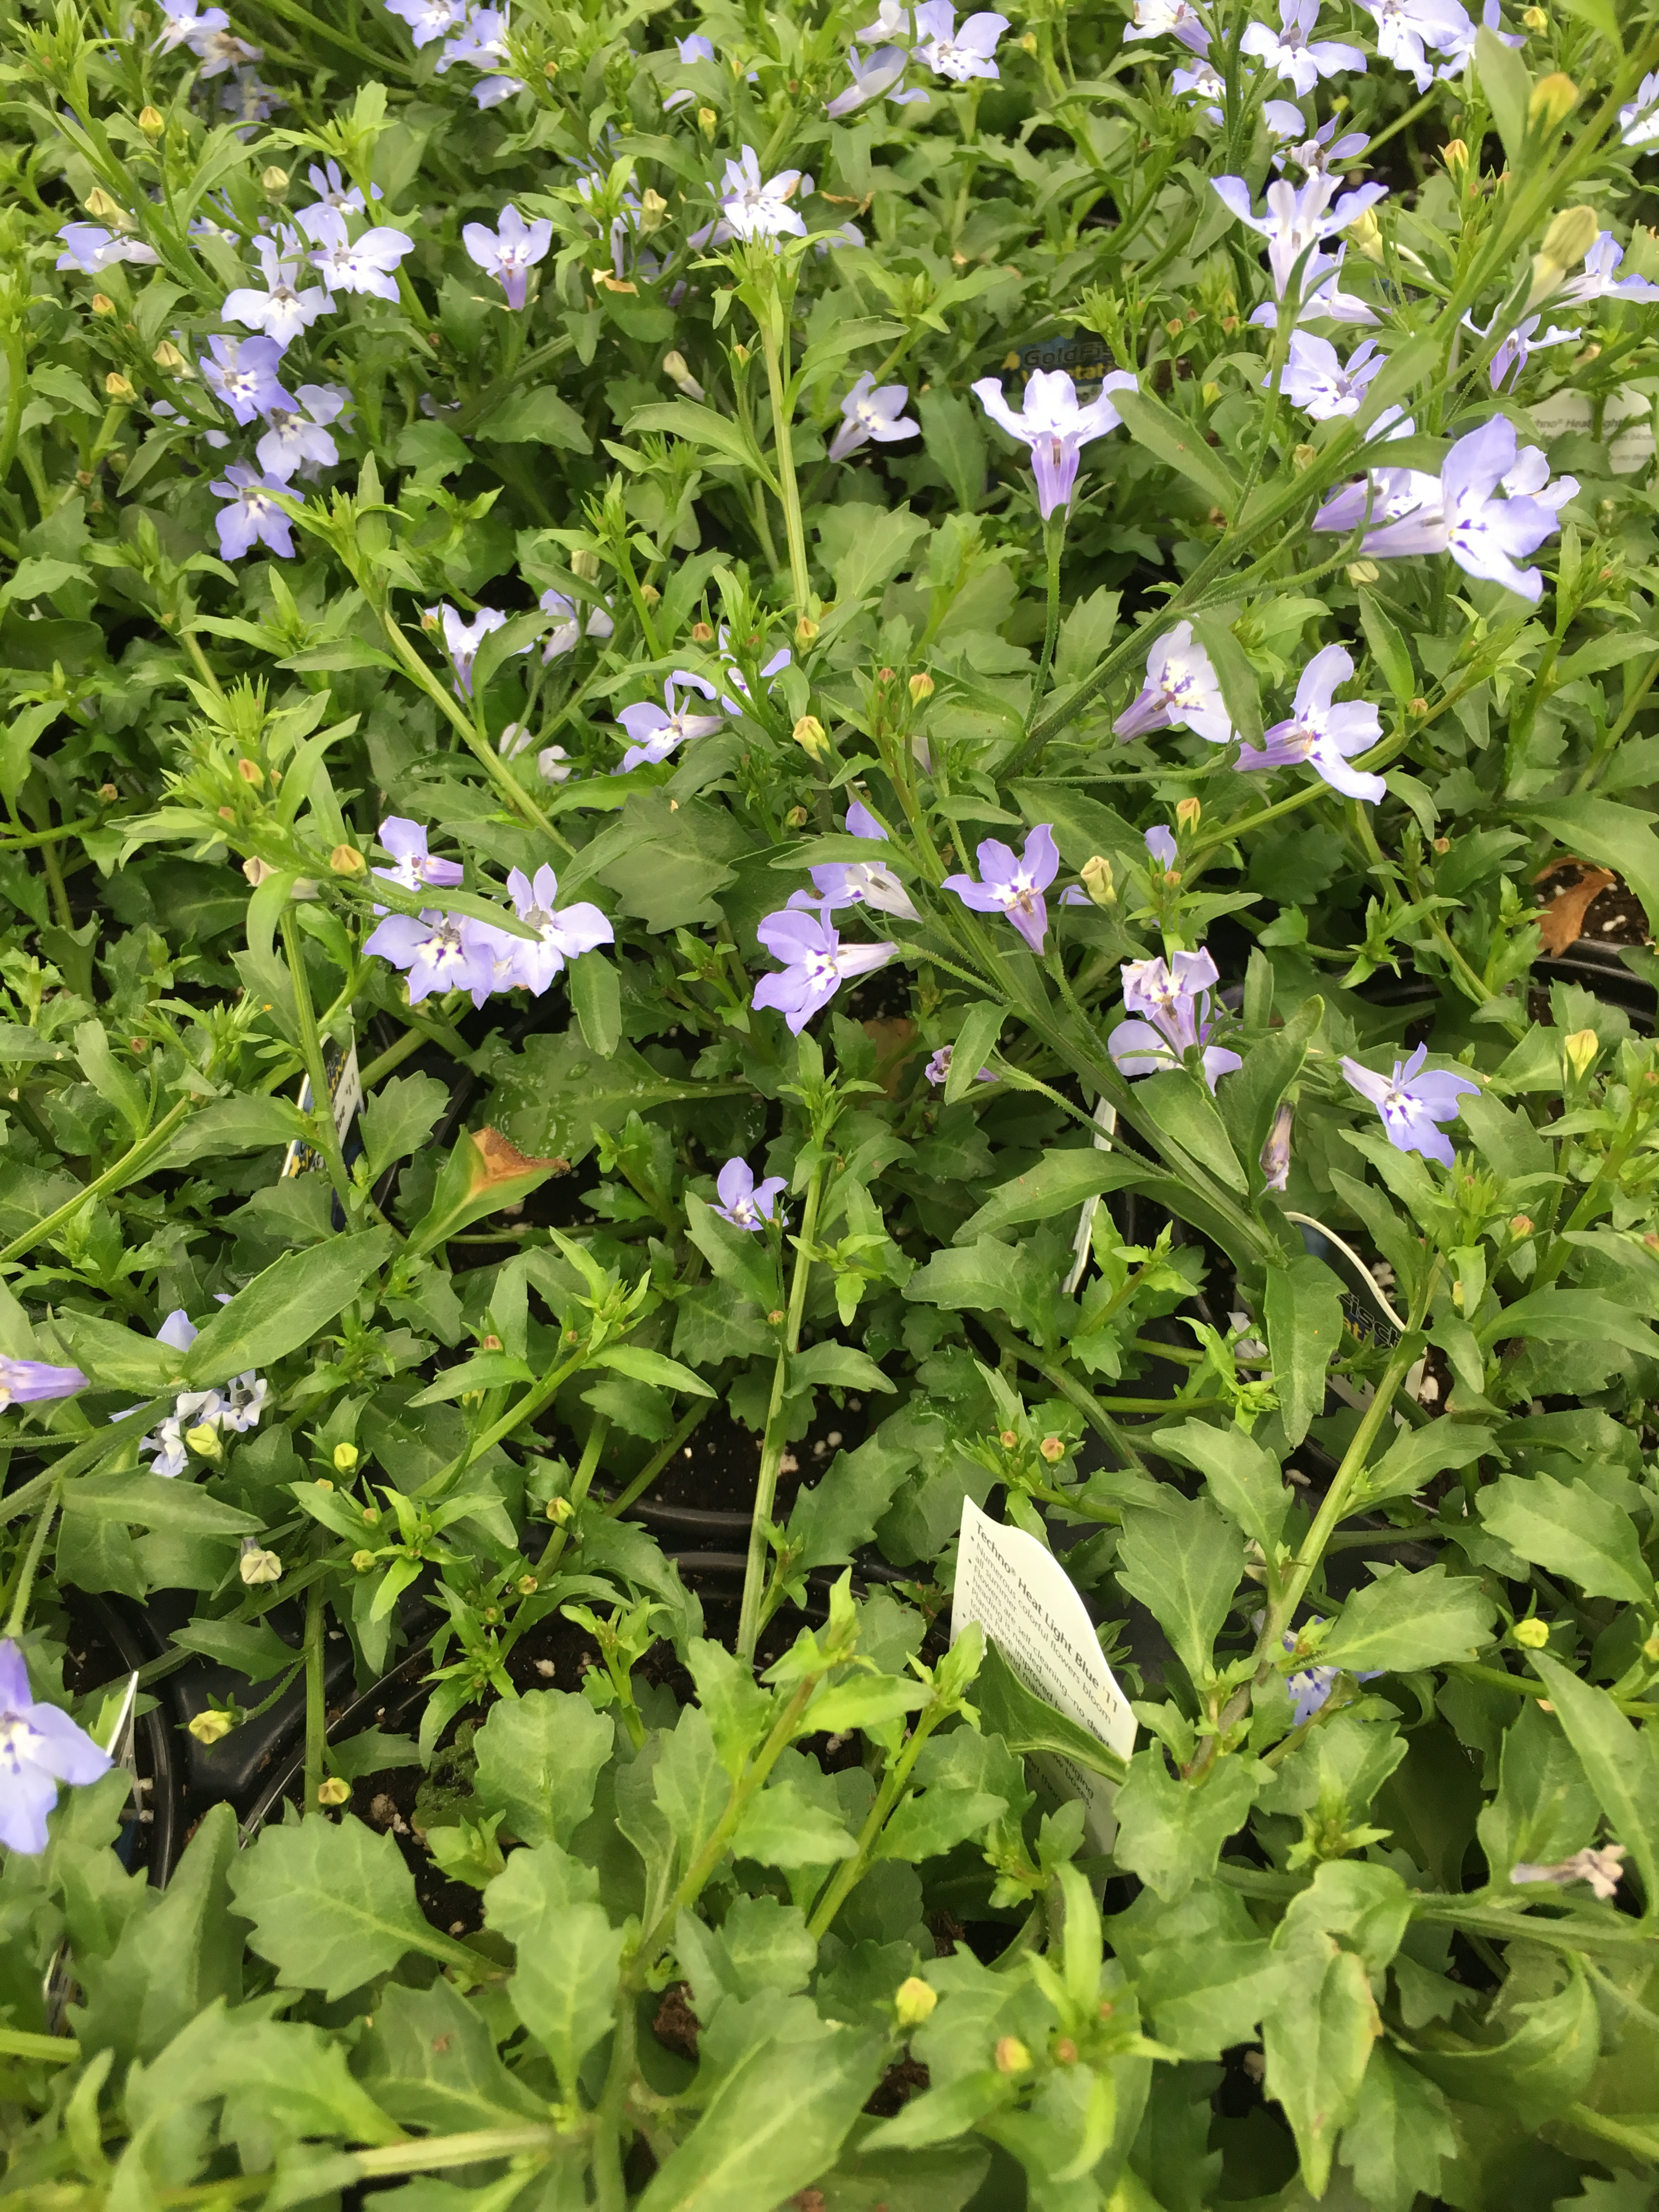 Interesting trailing vines and accent plants larsons garden center techno heat light blue 11 lobelia numerous colorful flowers bloom all summer flowers are self cleaning no deadheading is needed plants have improved izmirmasajfo Images